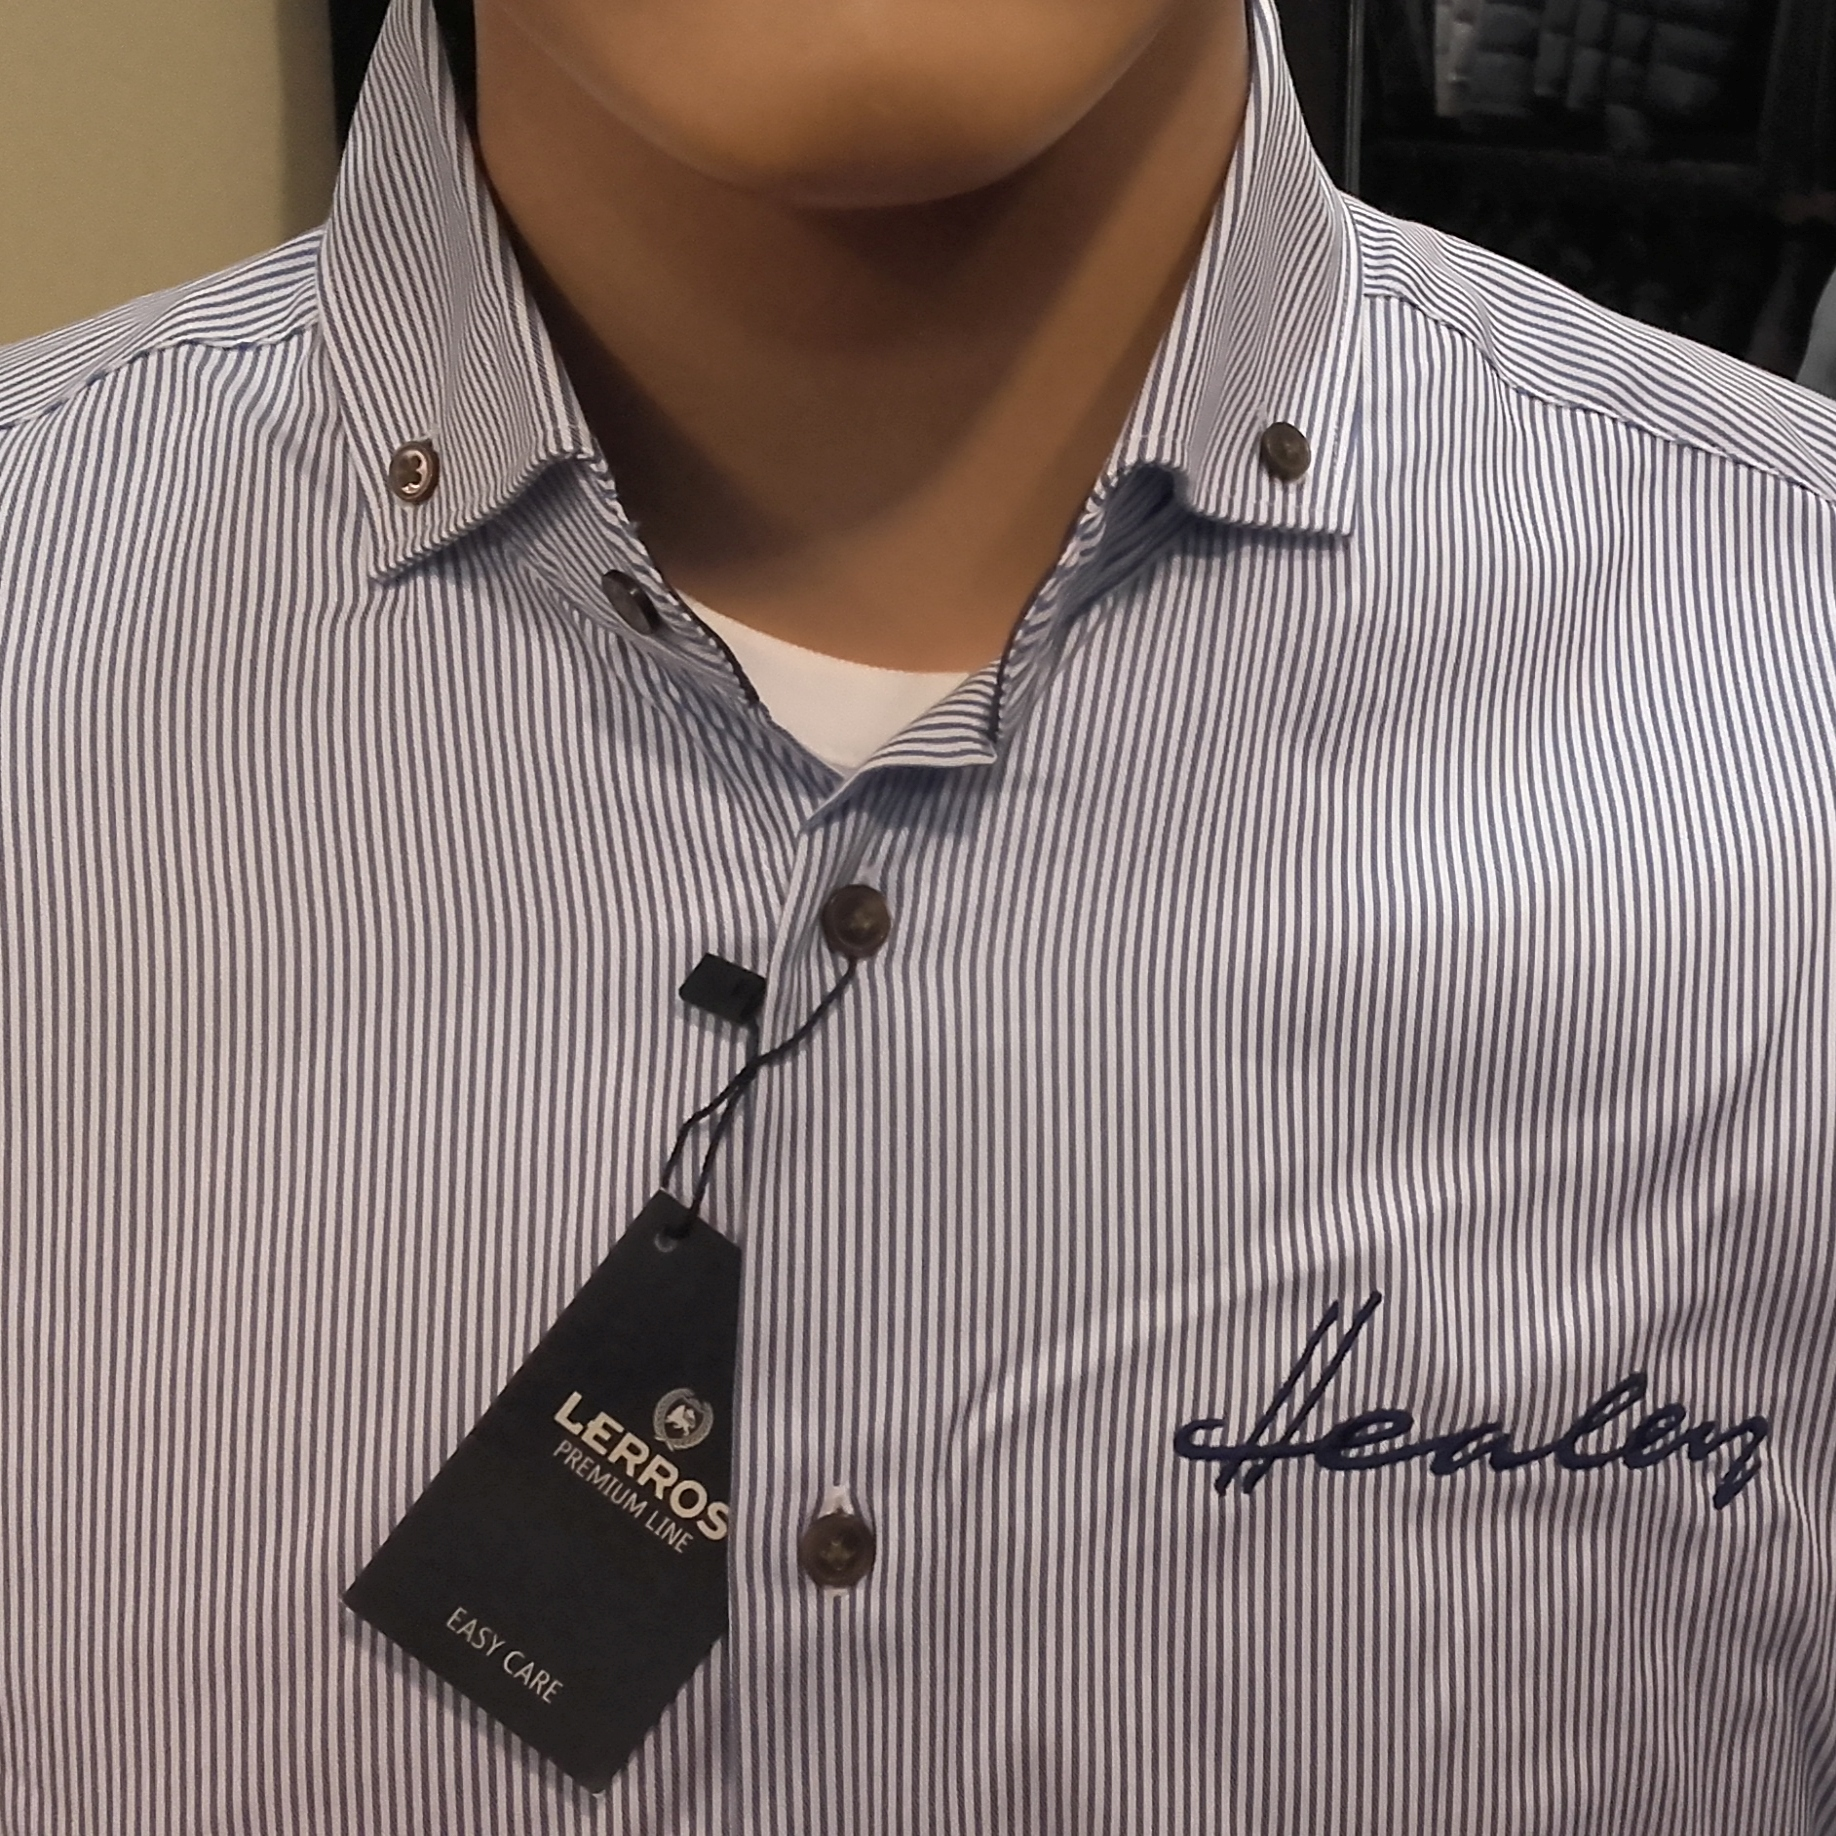 Healey Premium - Stripe Shirt